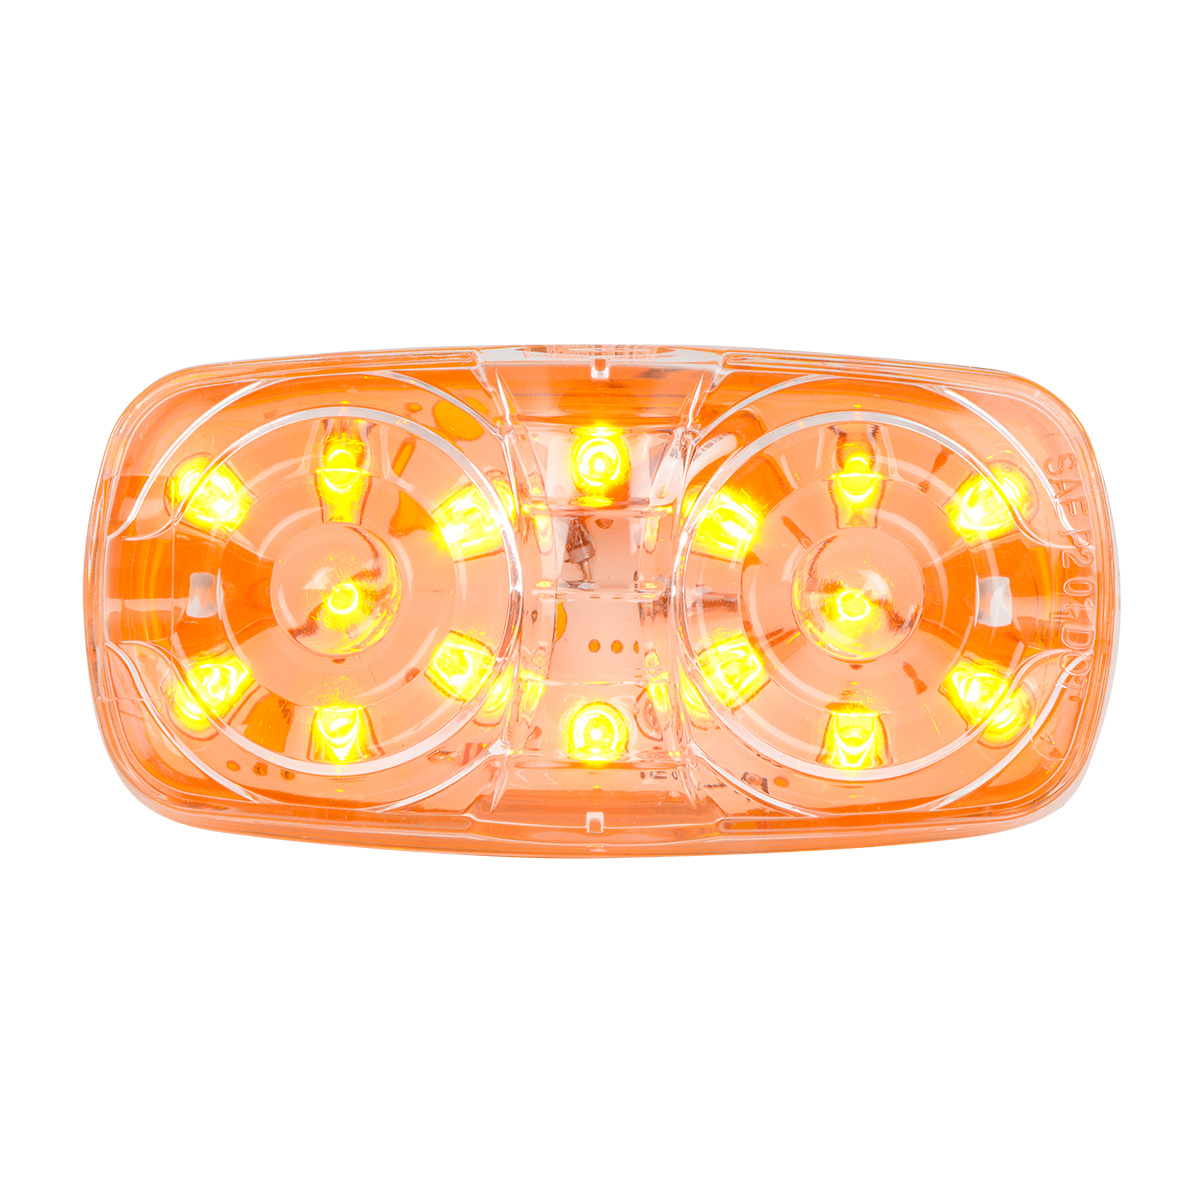 85242 Tiger Eye LED Marker Light in Amber/Amber